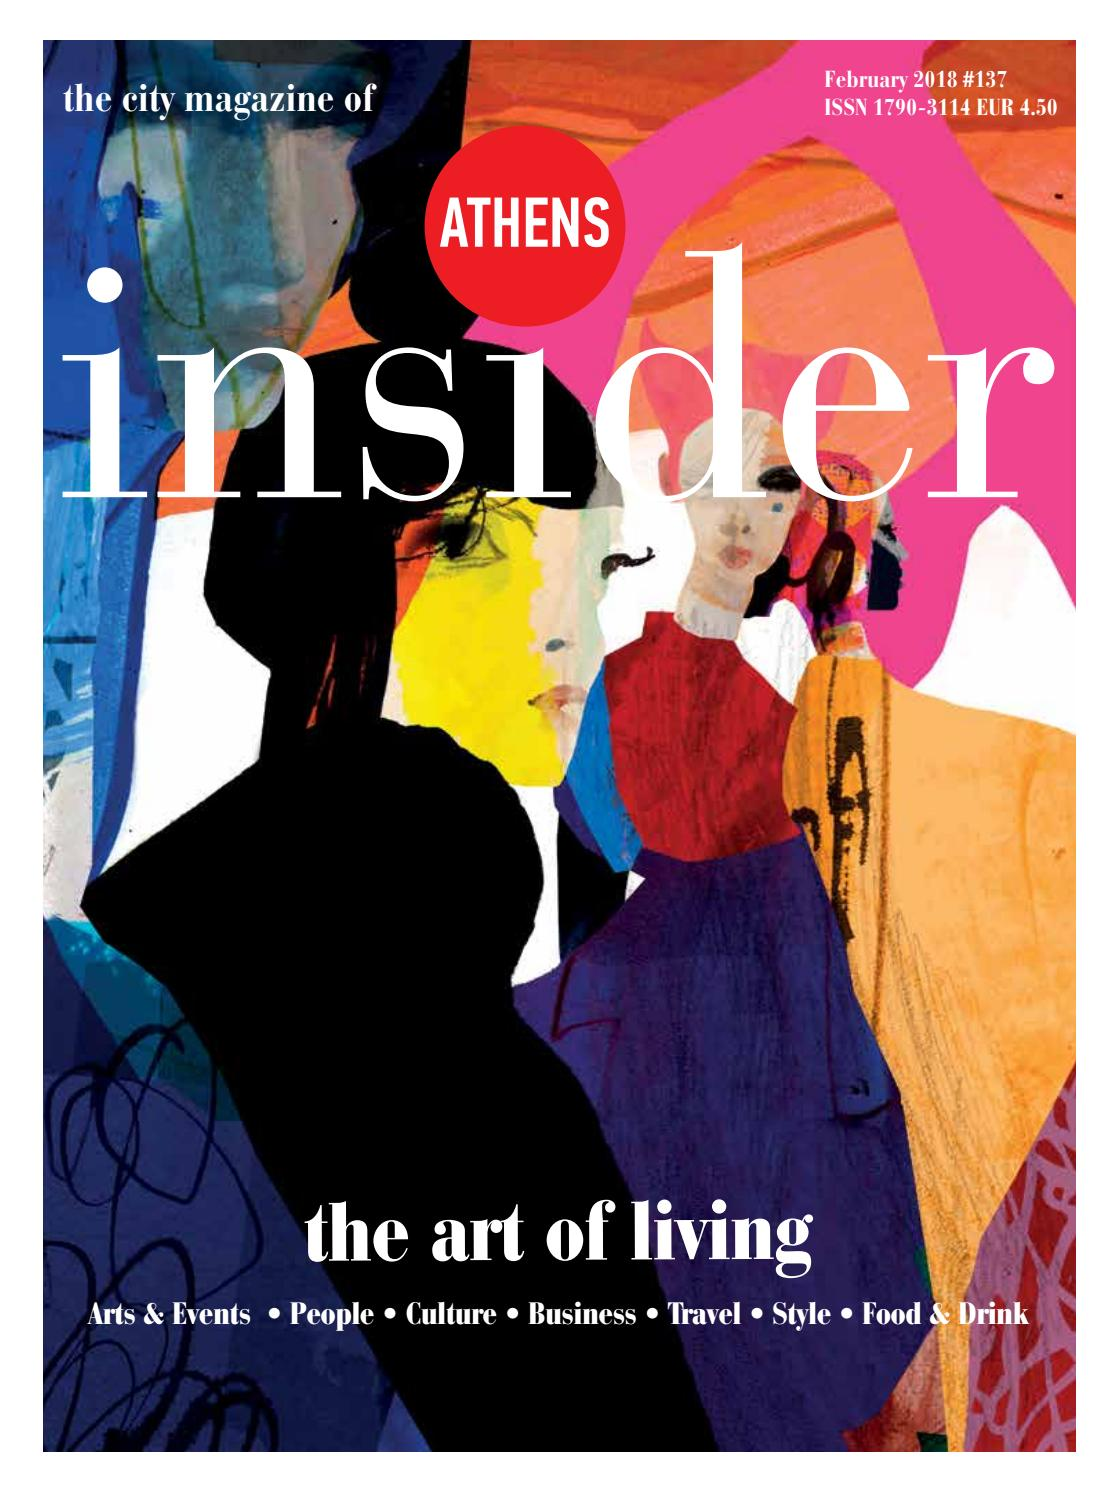 b19e96a17d Athens Insider Winter 2018 issuu by Insider Publications - issuu